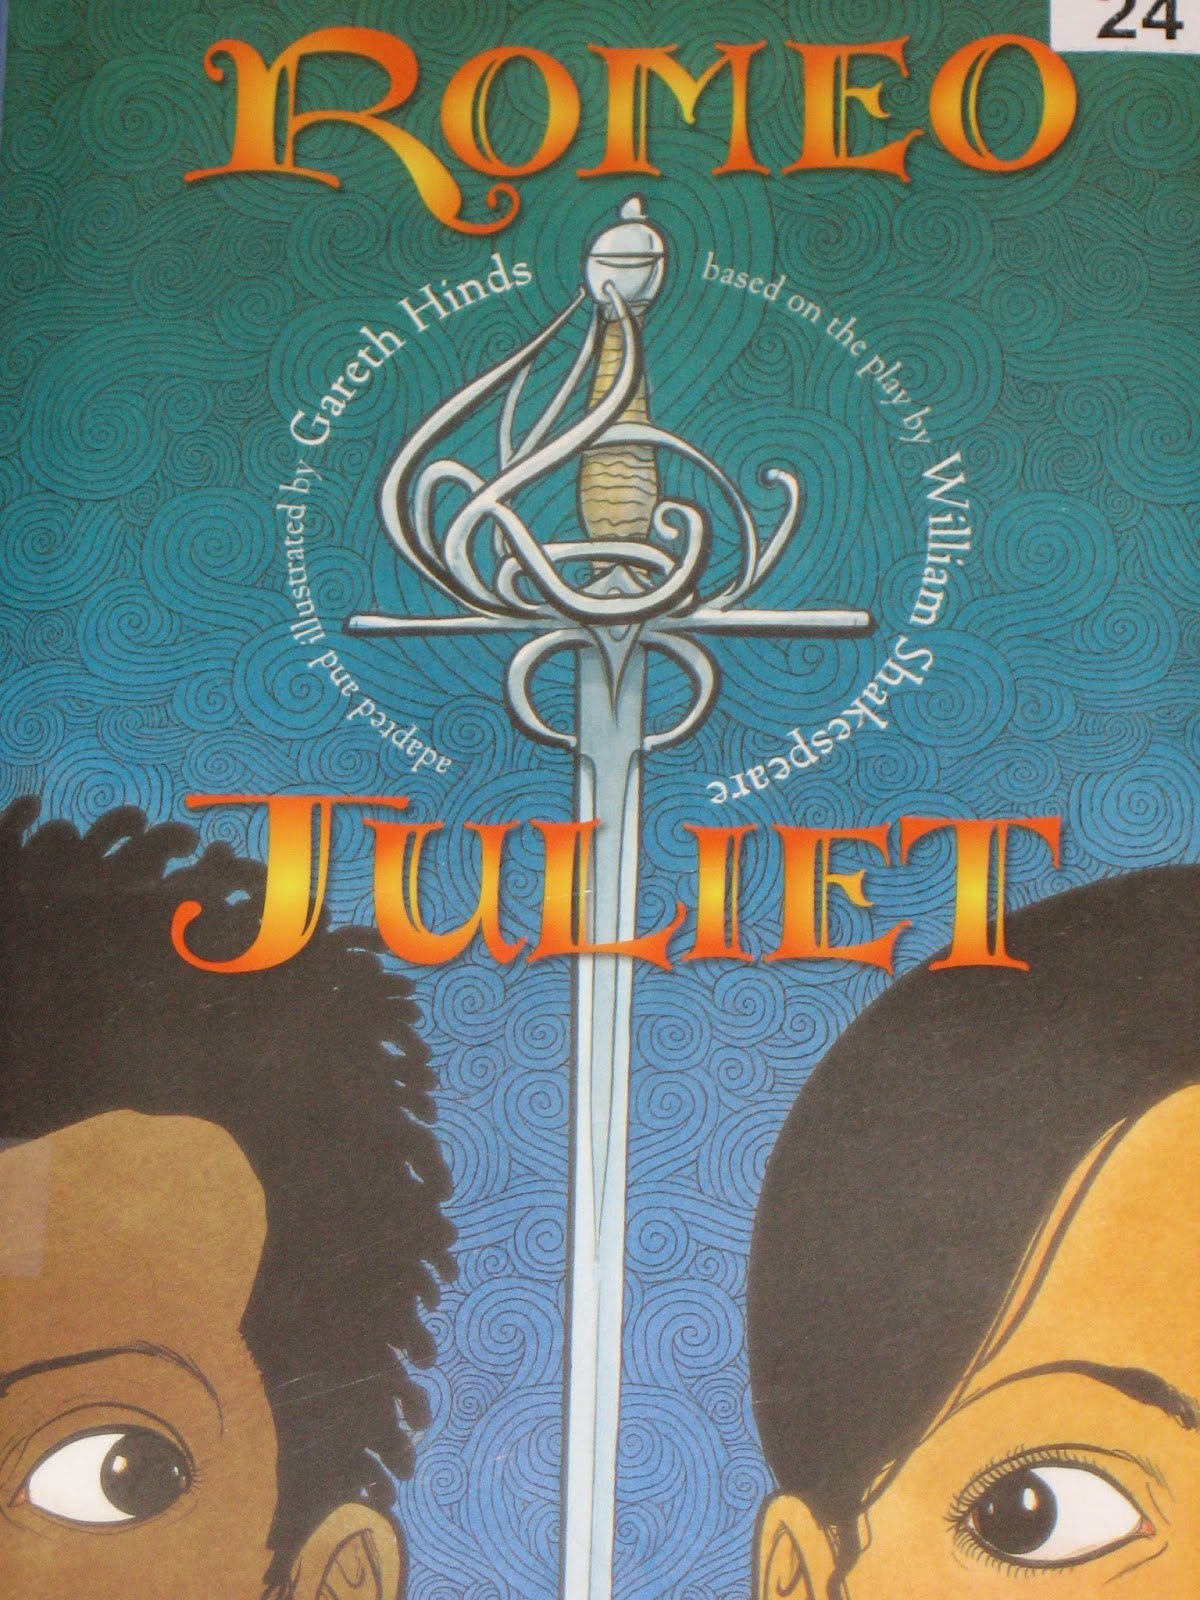 mostly shakespeare but also some occasional nonsense the most excellent and lamentable tragedy of romeo and juliet adapted and illustrated by gareth hinds this is a graphic novel version of romeo and juliet